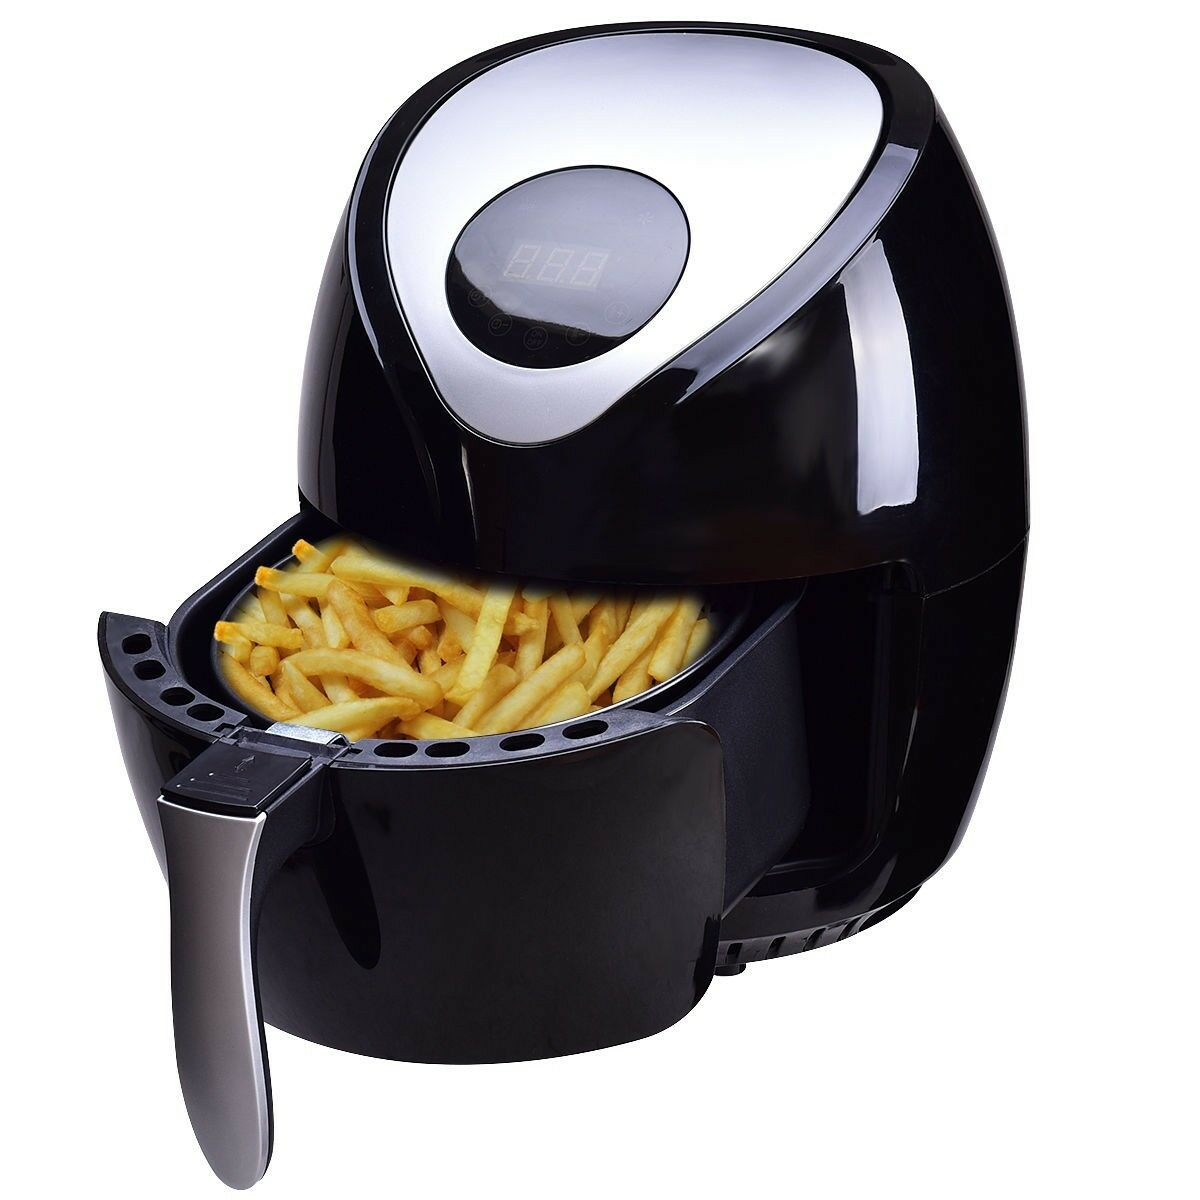 Auto Electric Air Fryer Digital Touch Screen Temperature Control Kitchen Home